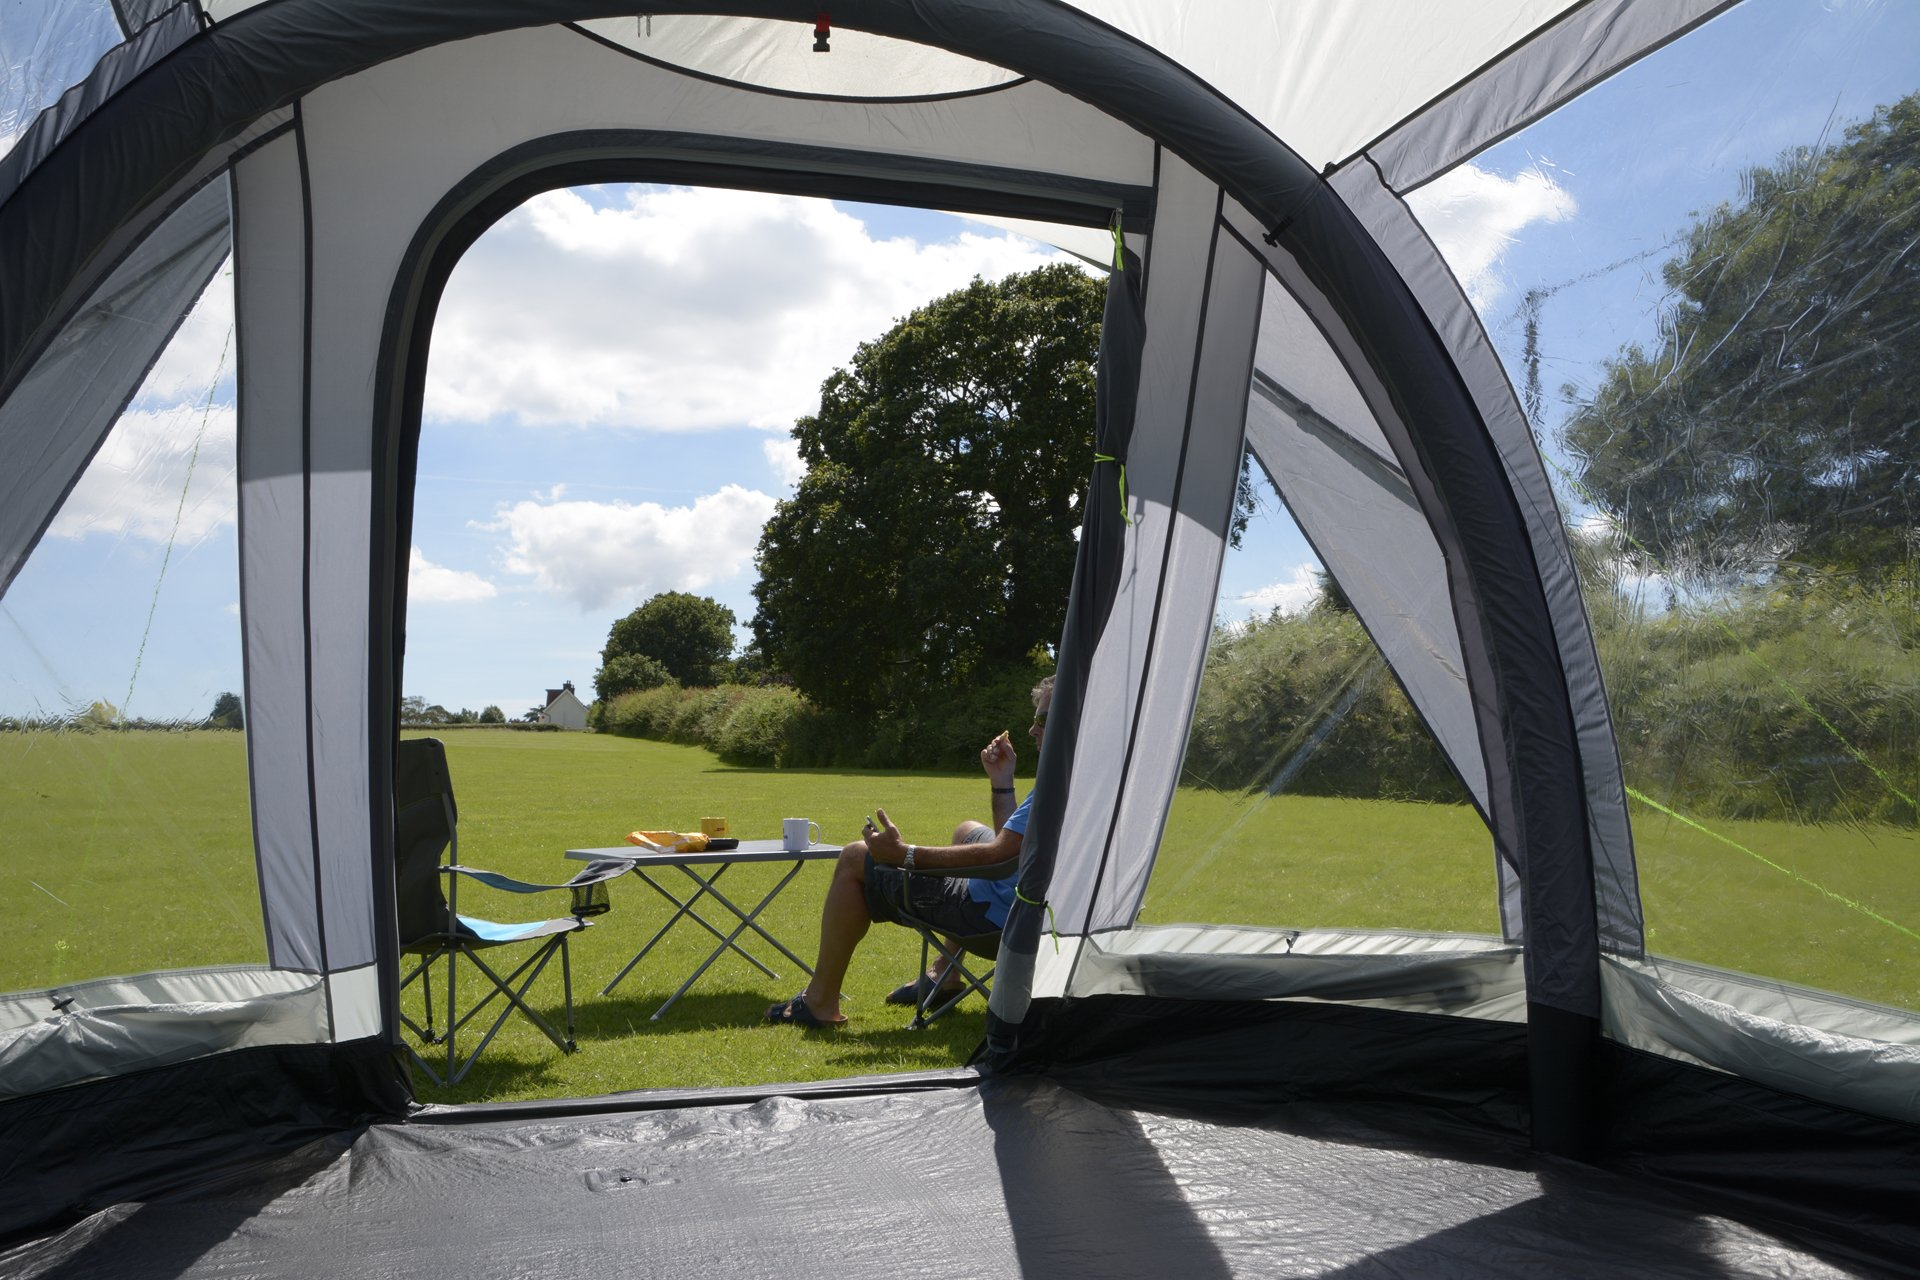 Kampa Travel Pod Action AIR VW Driveaway Awning view to outside